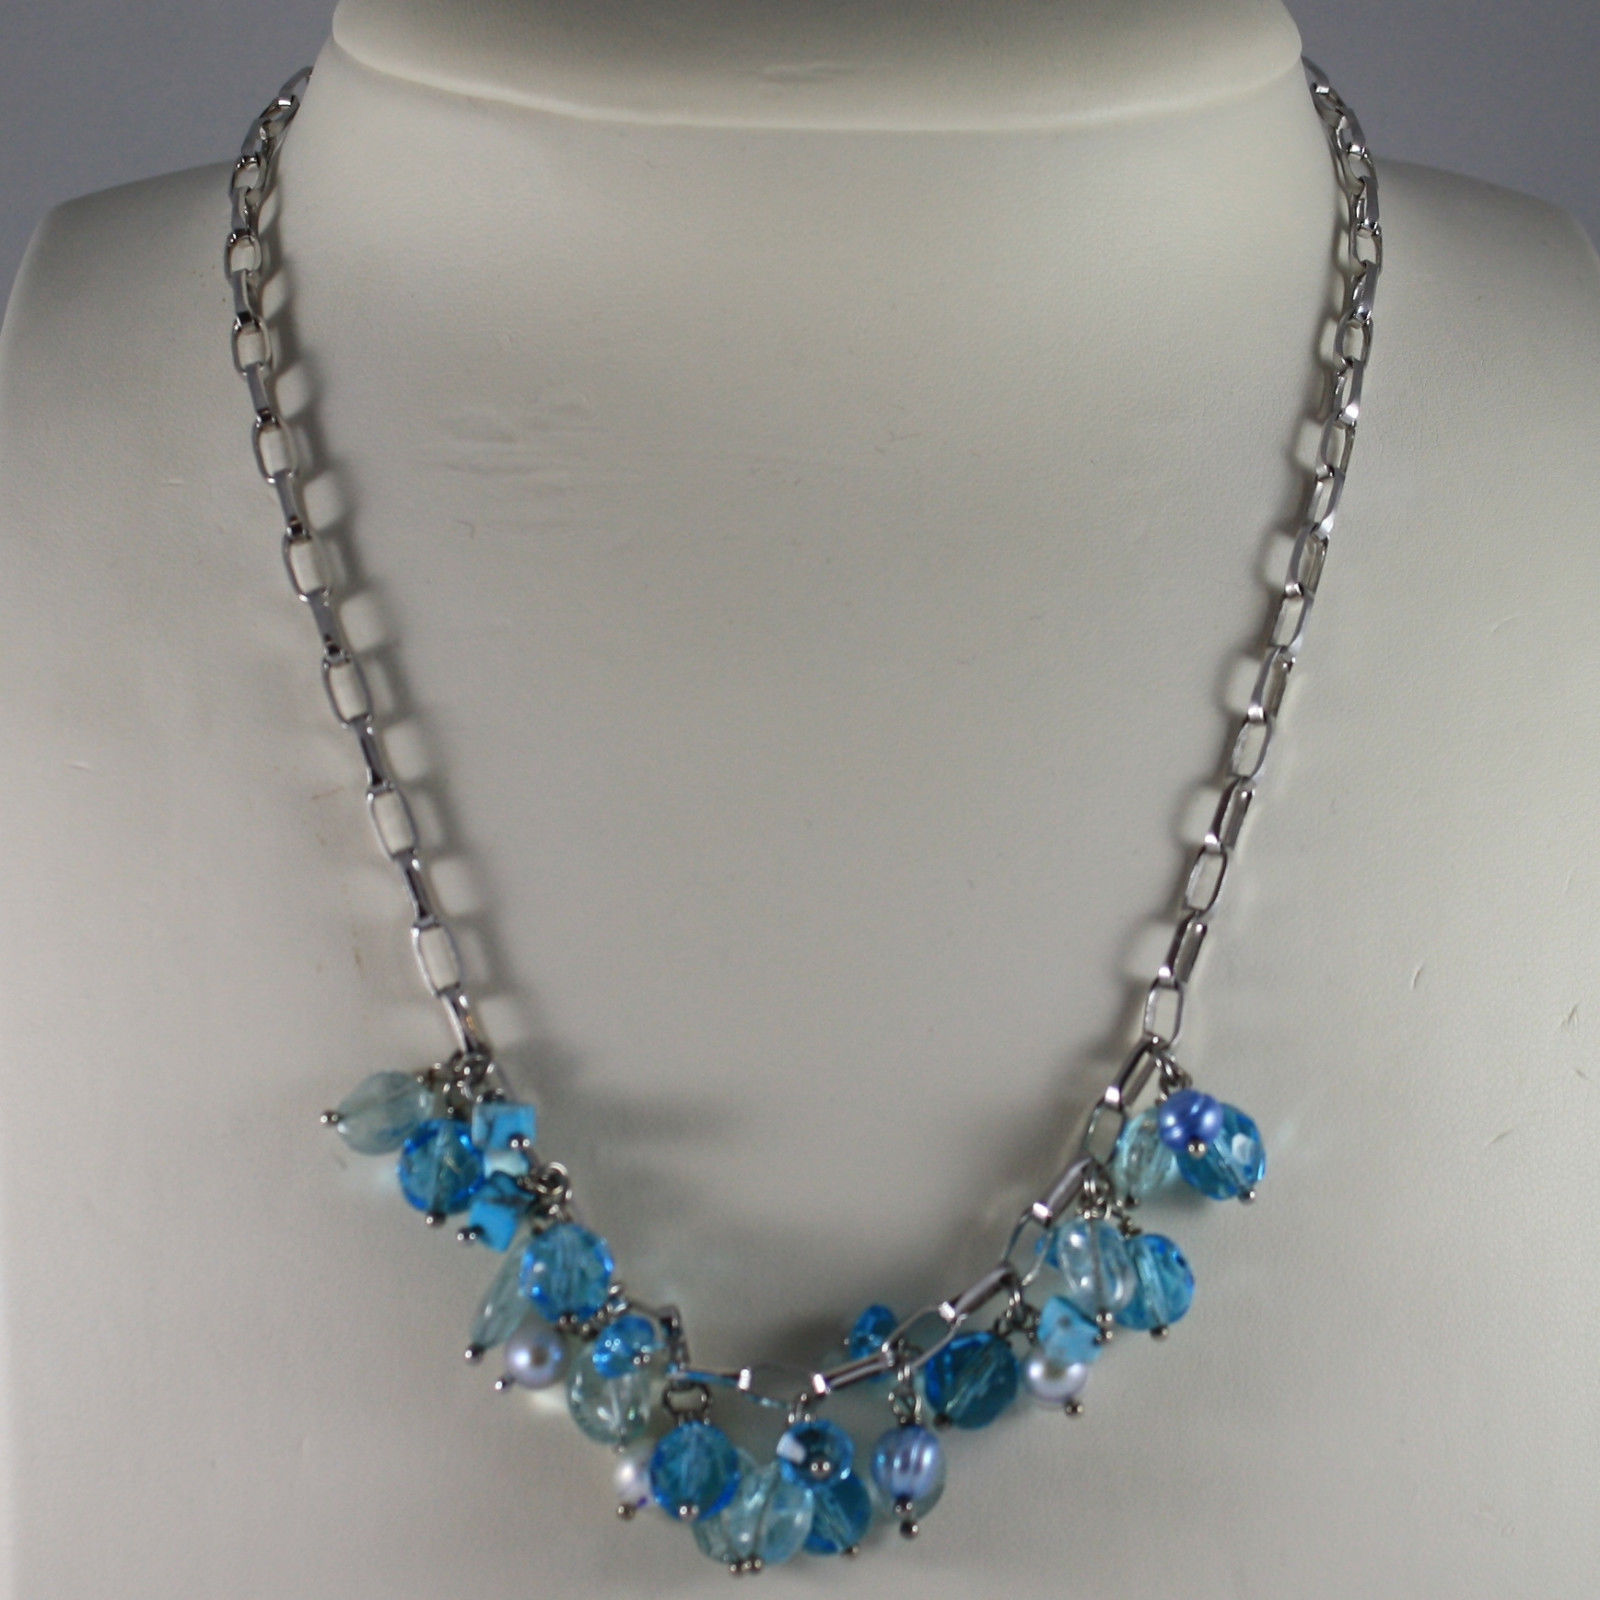 .925 SILVER RHODIUM NECKLACE WITH PEARLS, QUARTZ, TURQUOISE AND CRISTALS